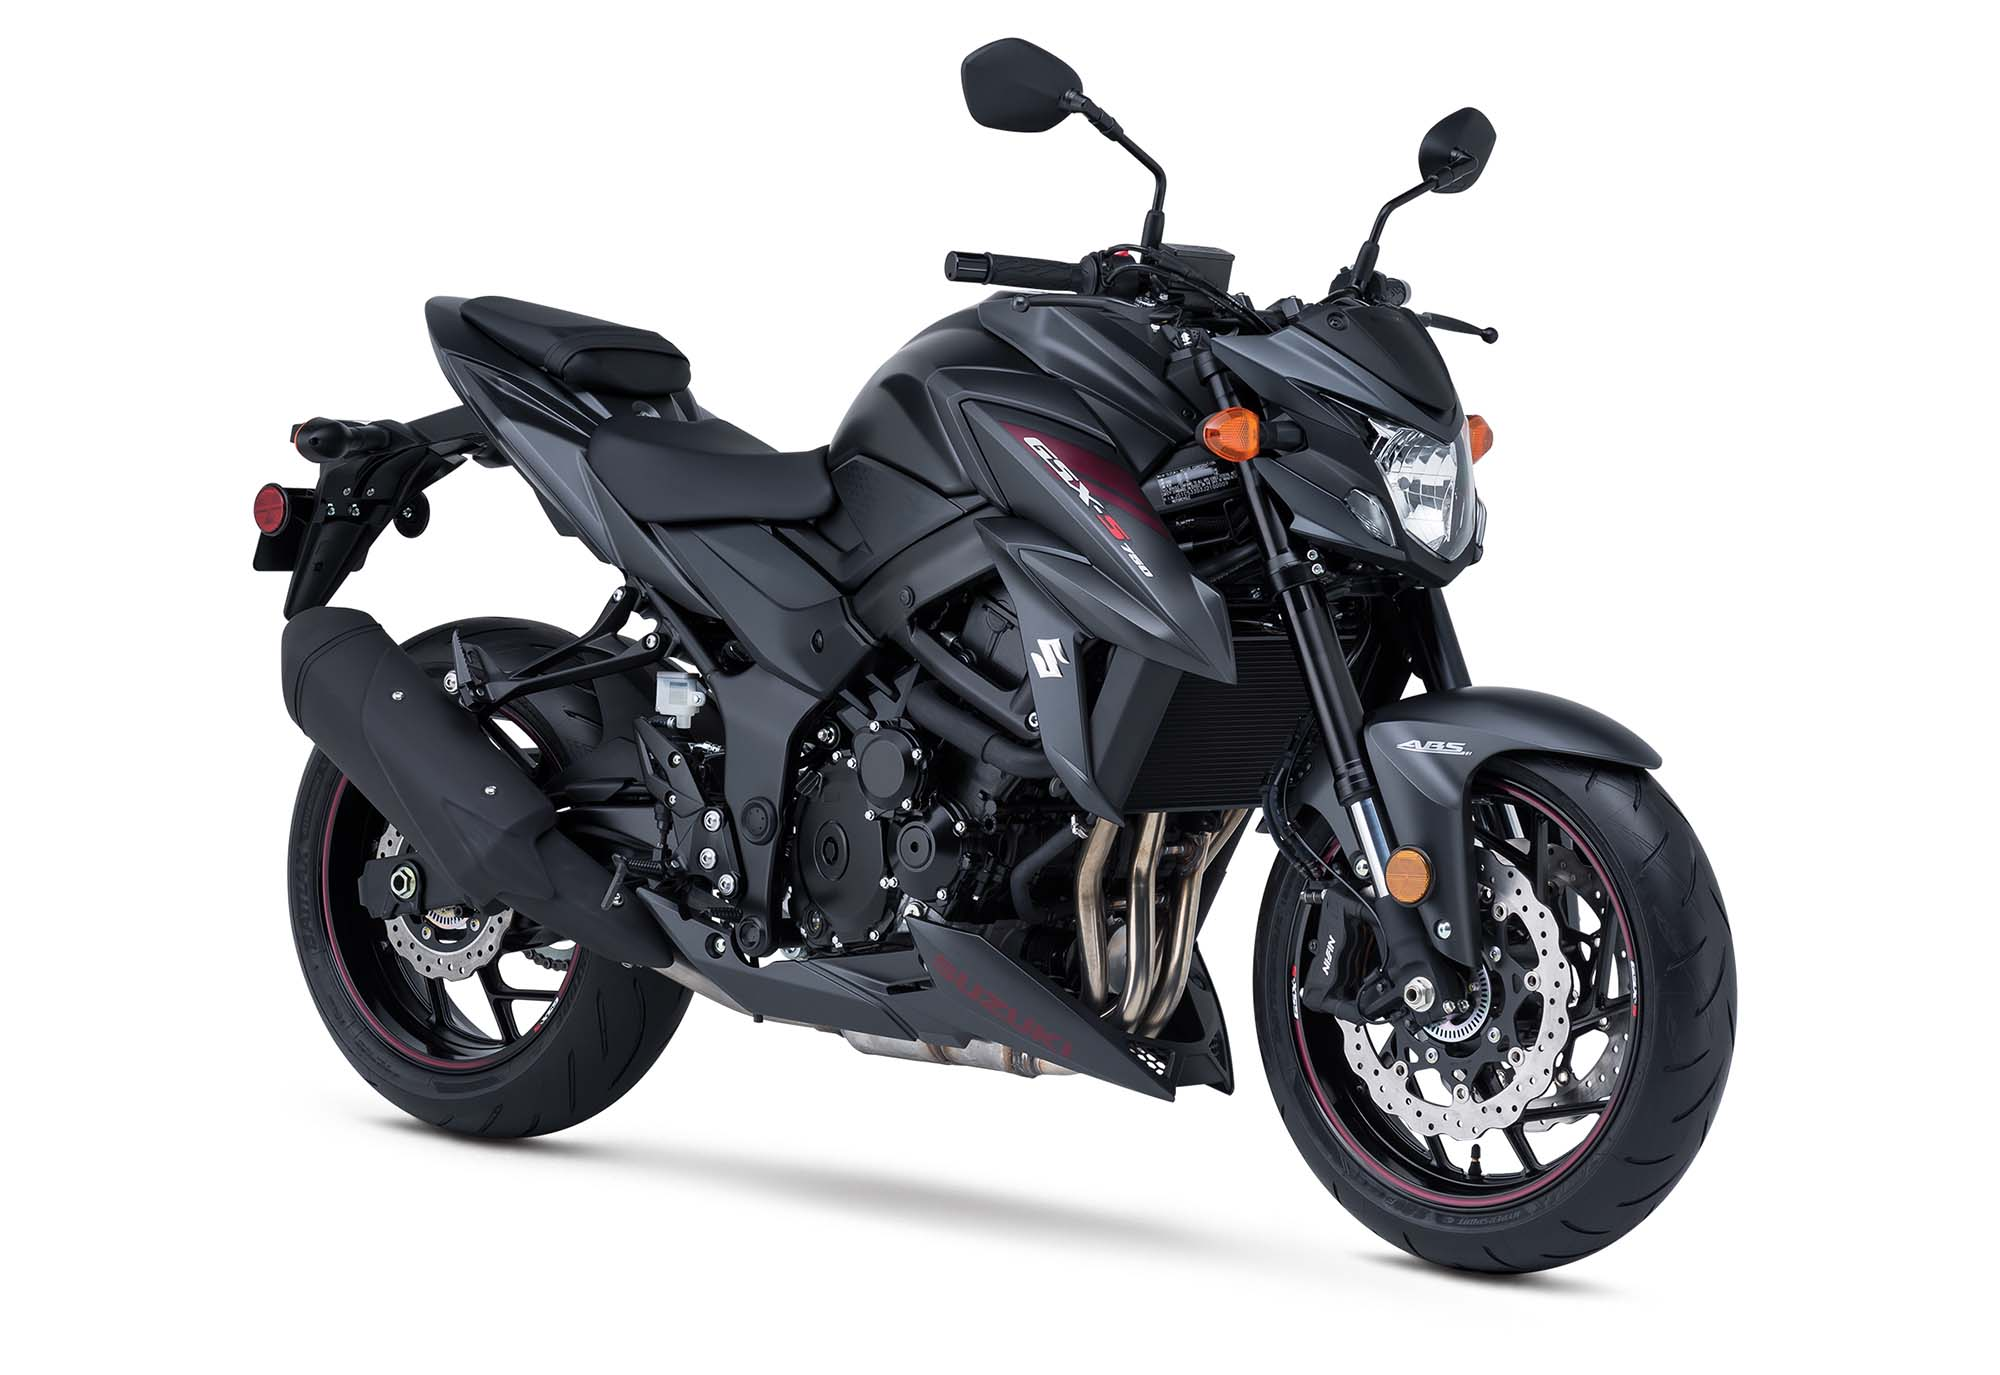 Suzuki GSX-S750 first ride: 'Hard to fall in love with' | MCN